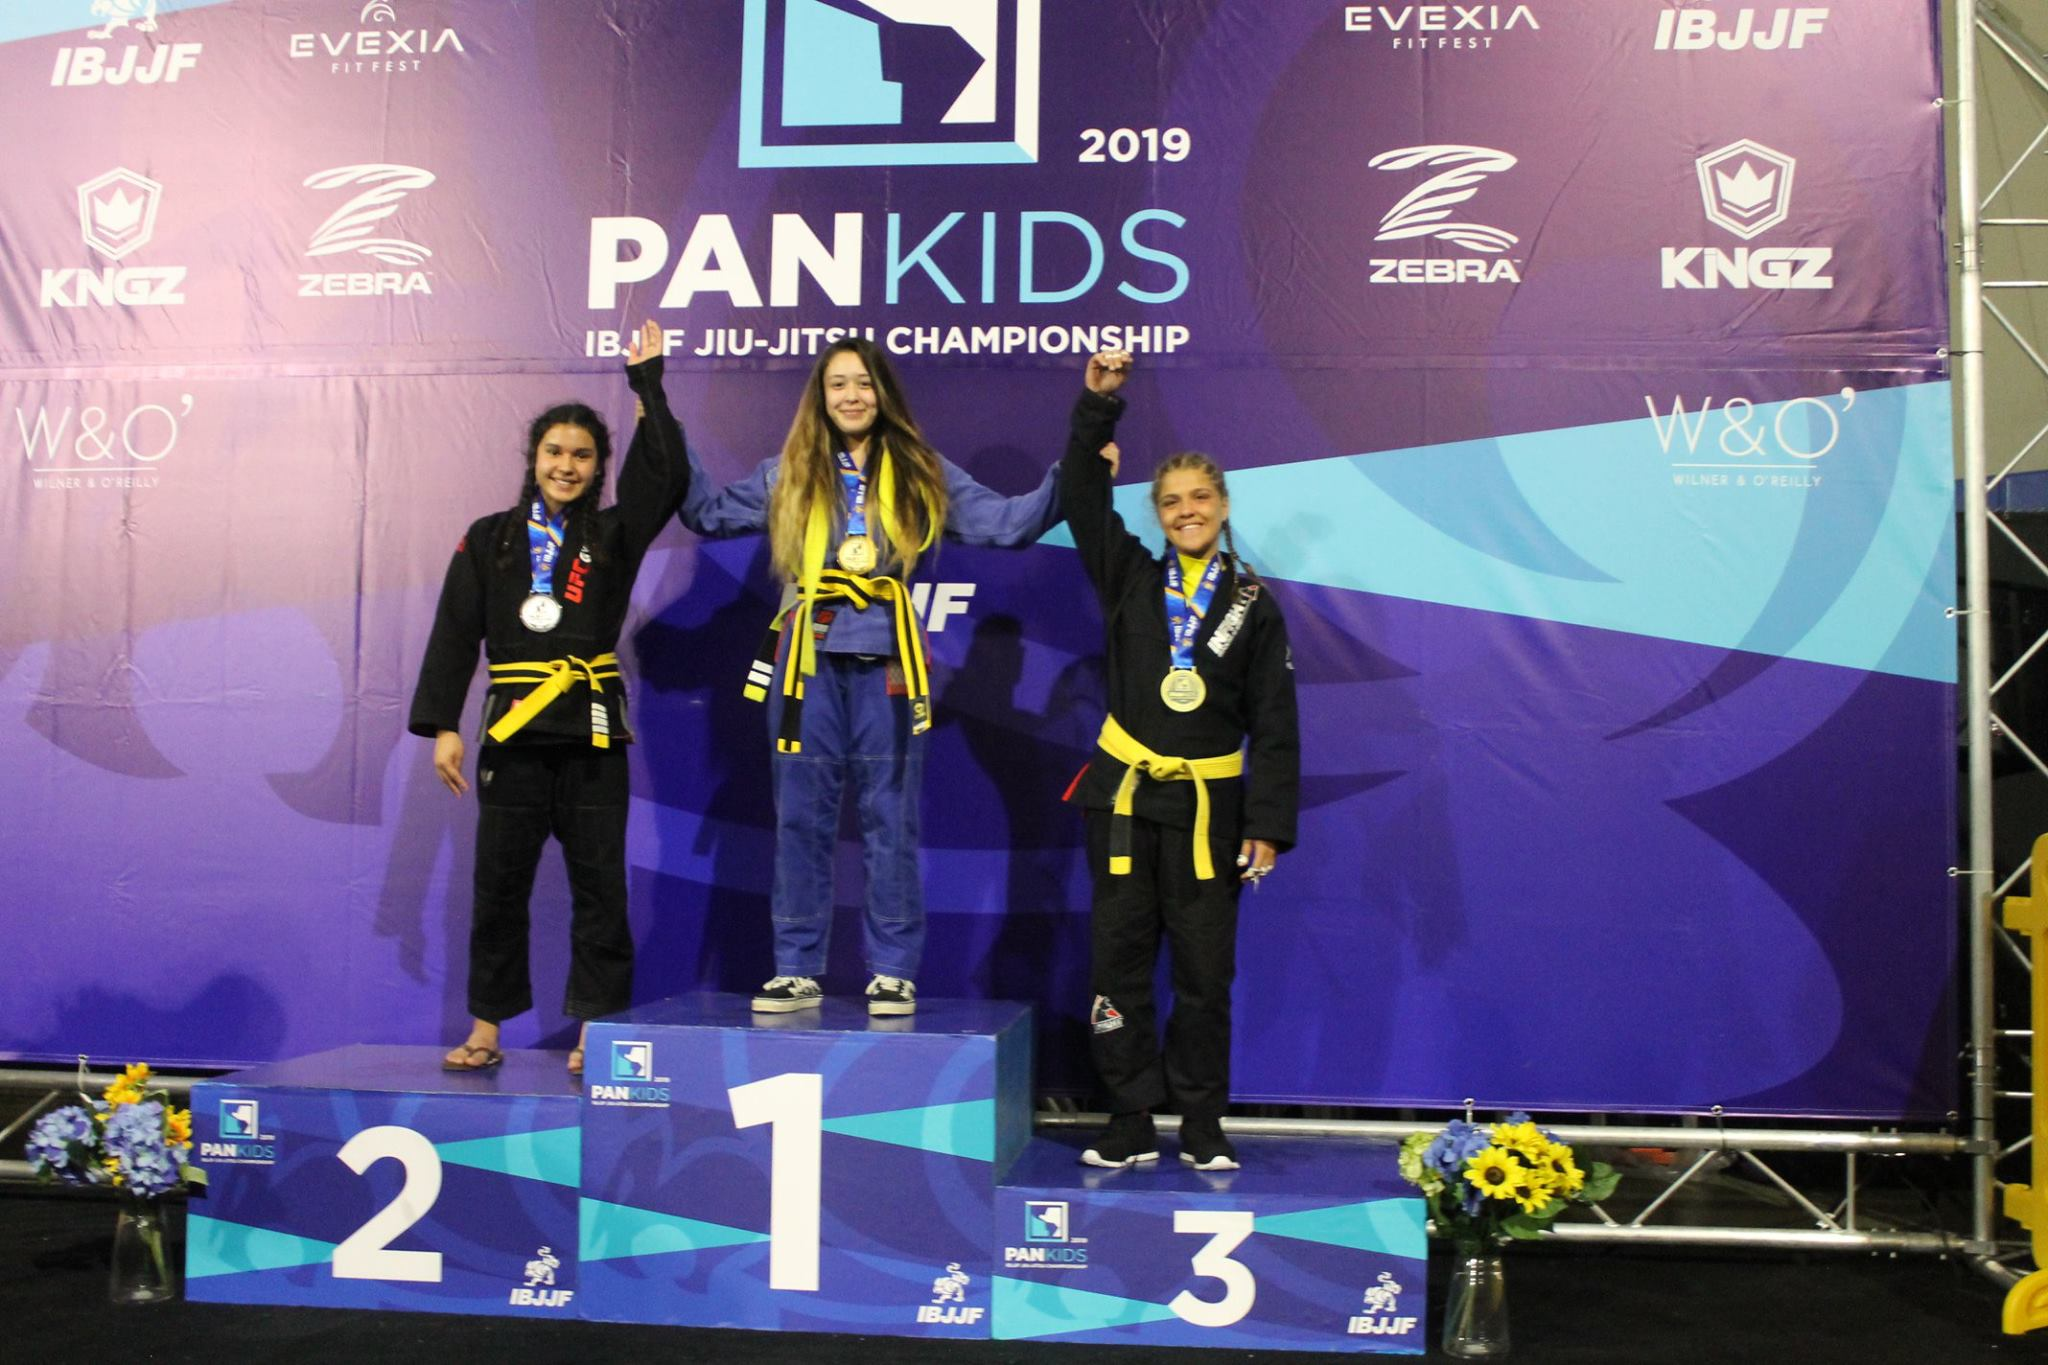 Sophia IBJJF PAN KIDS podium